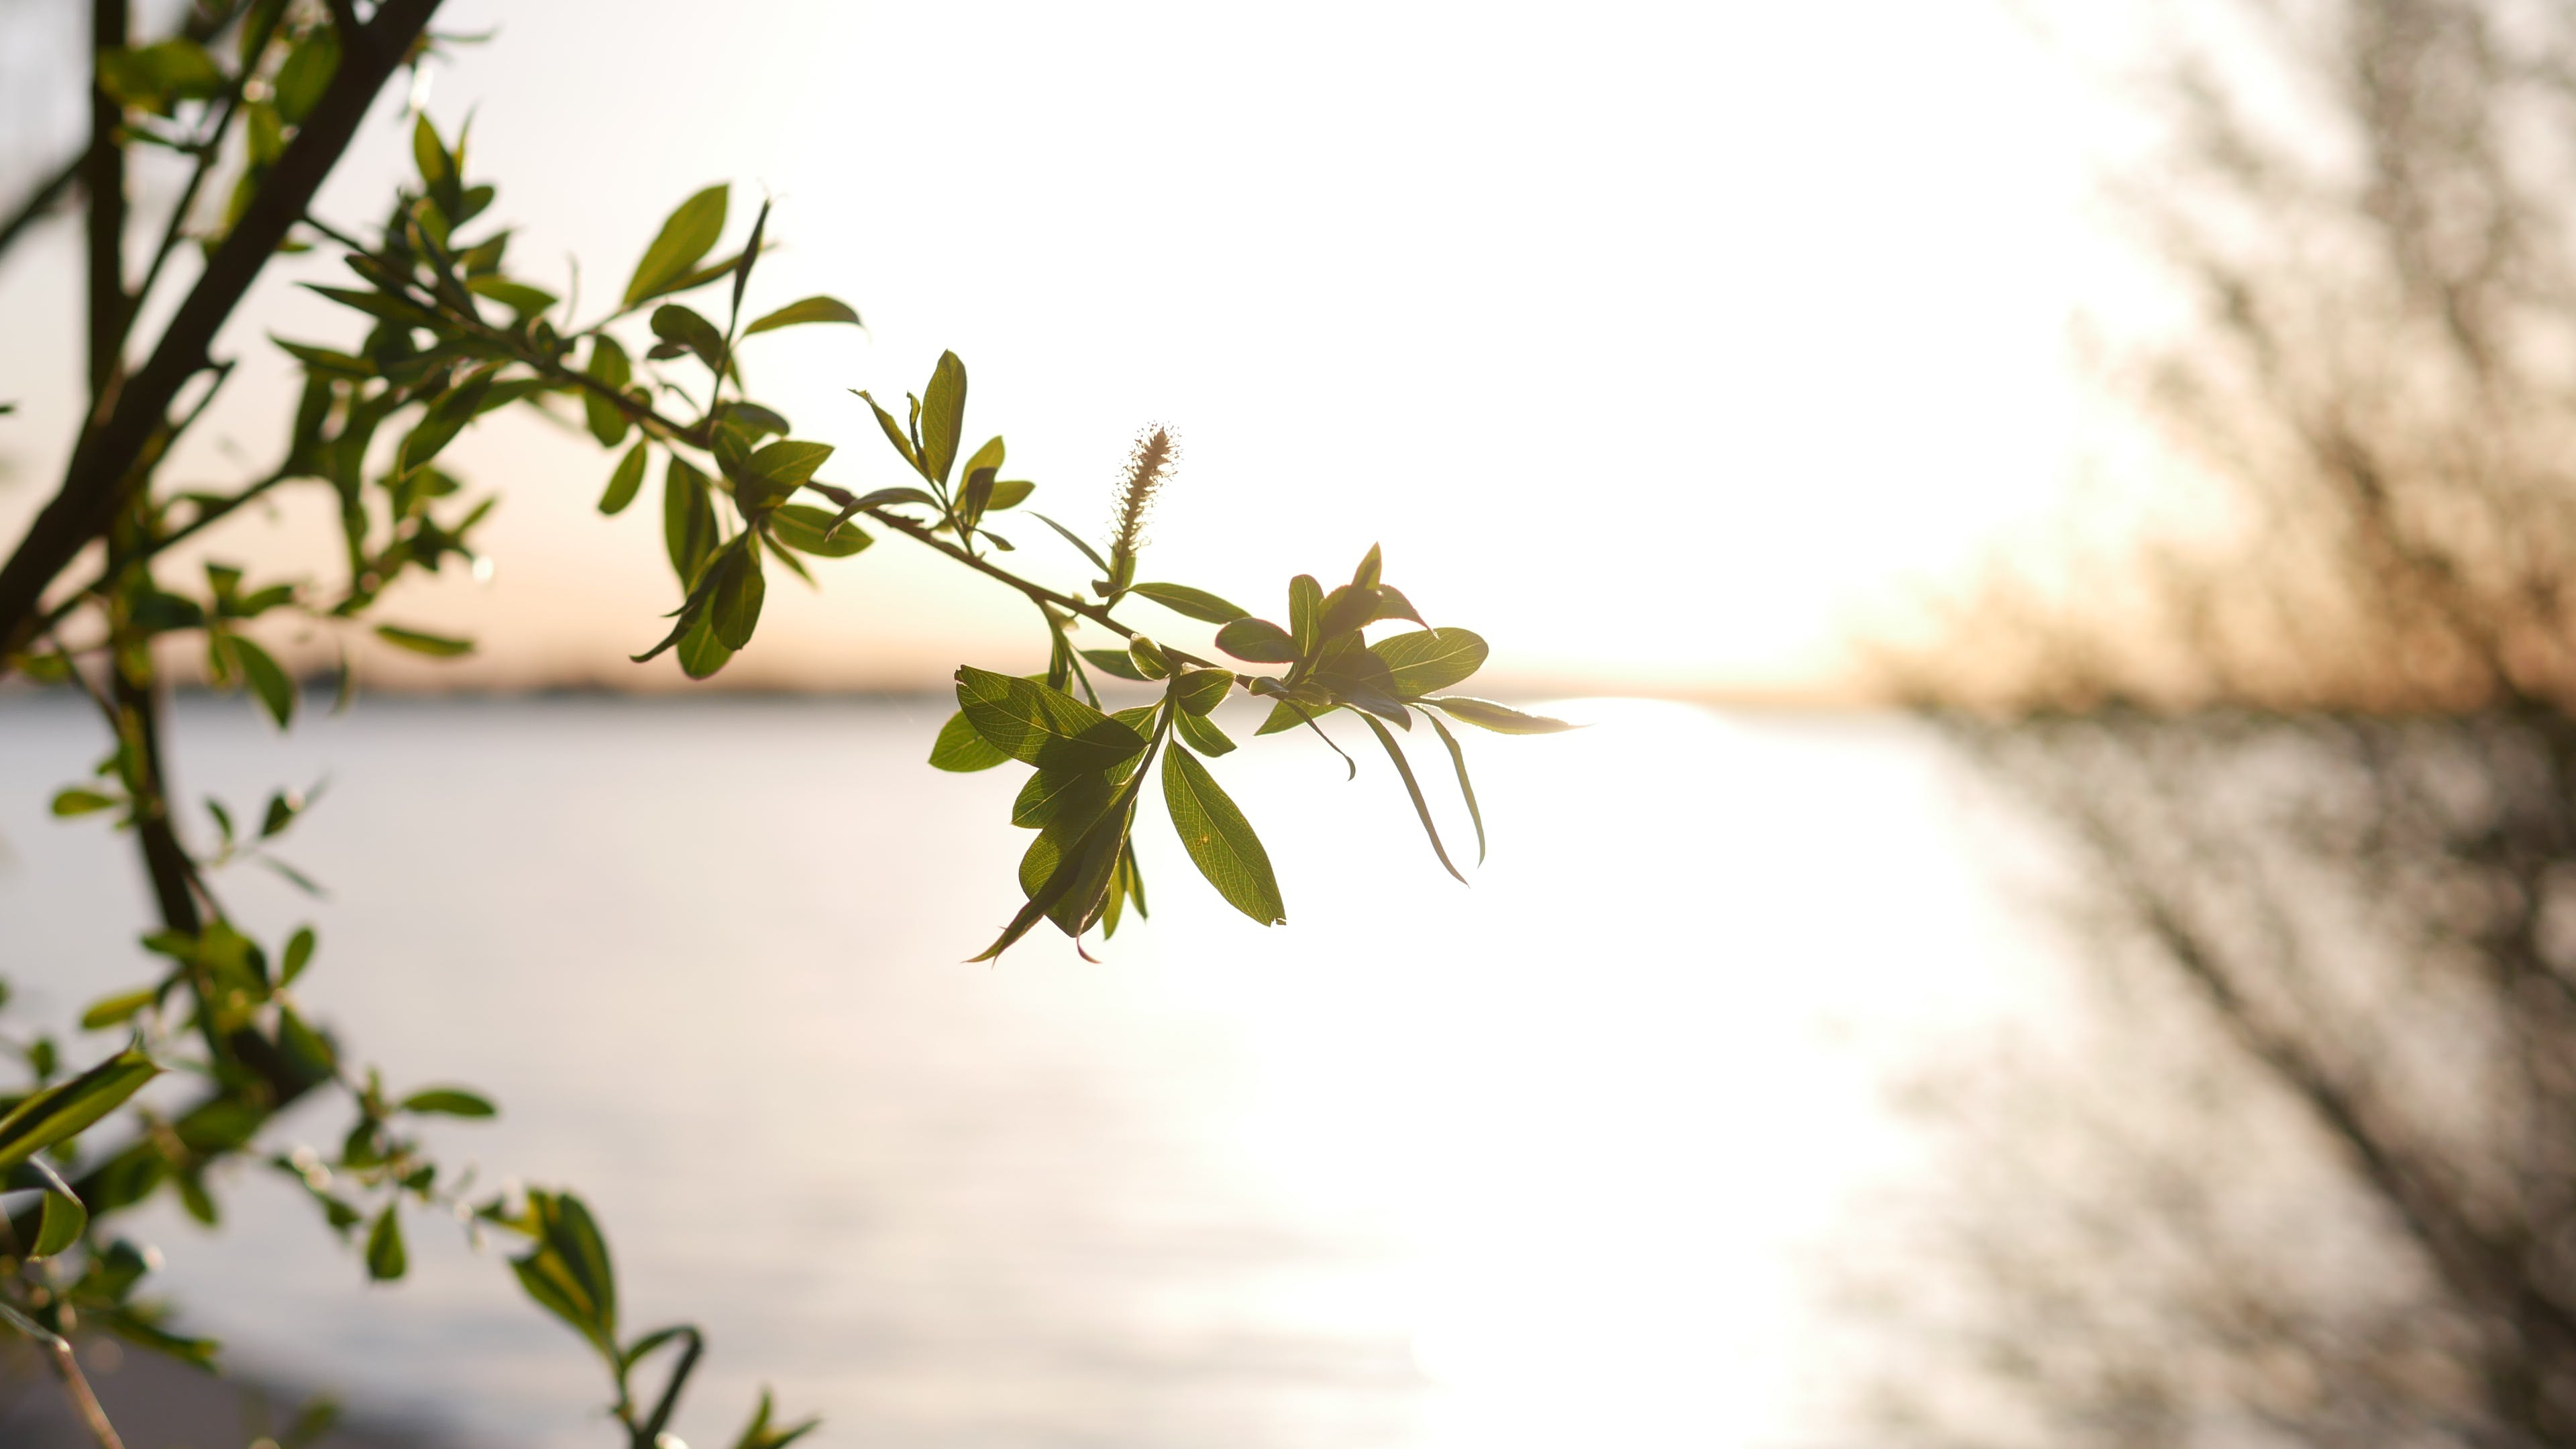 Selective Focus Photography of Leaf Tree Near Shore Line